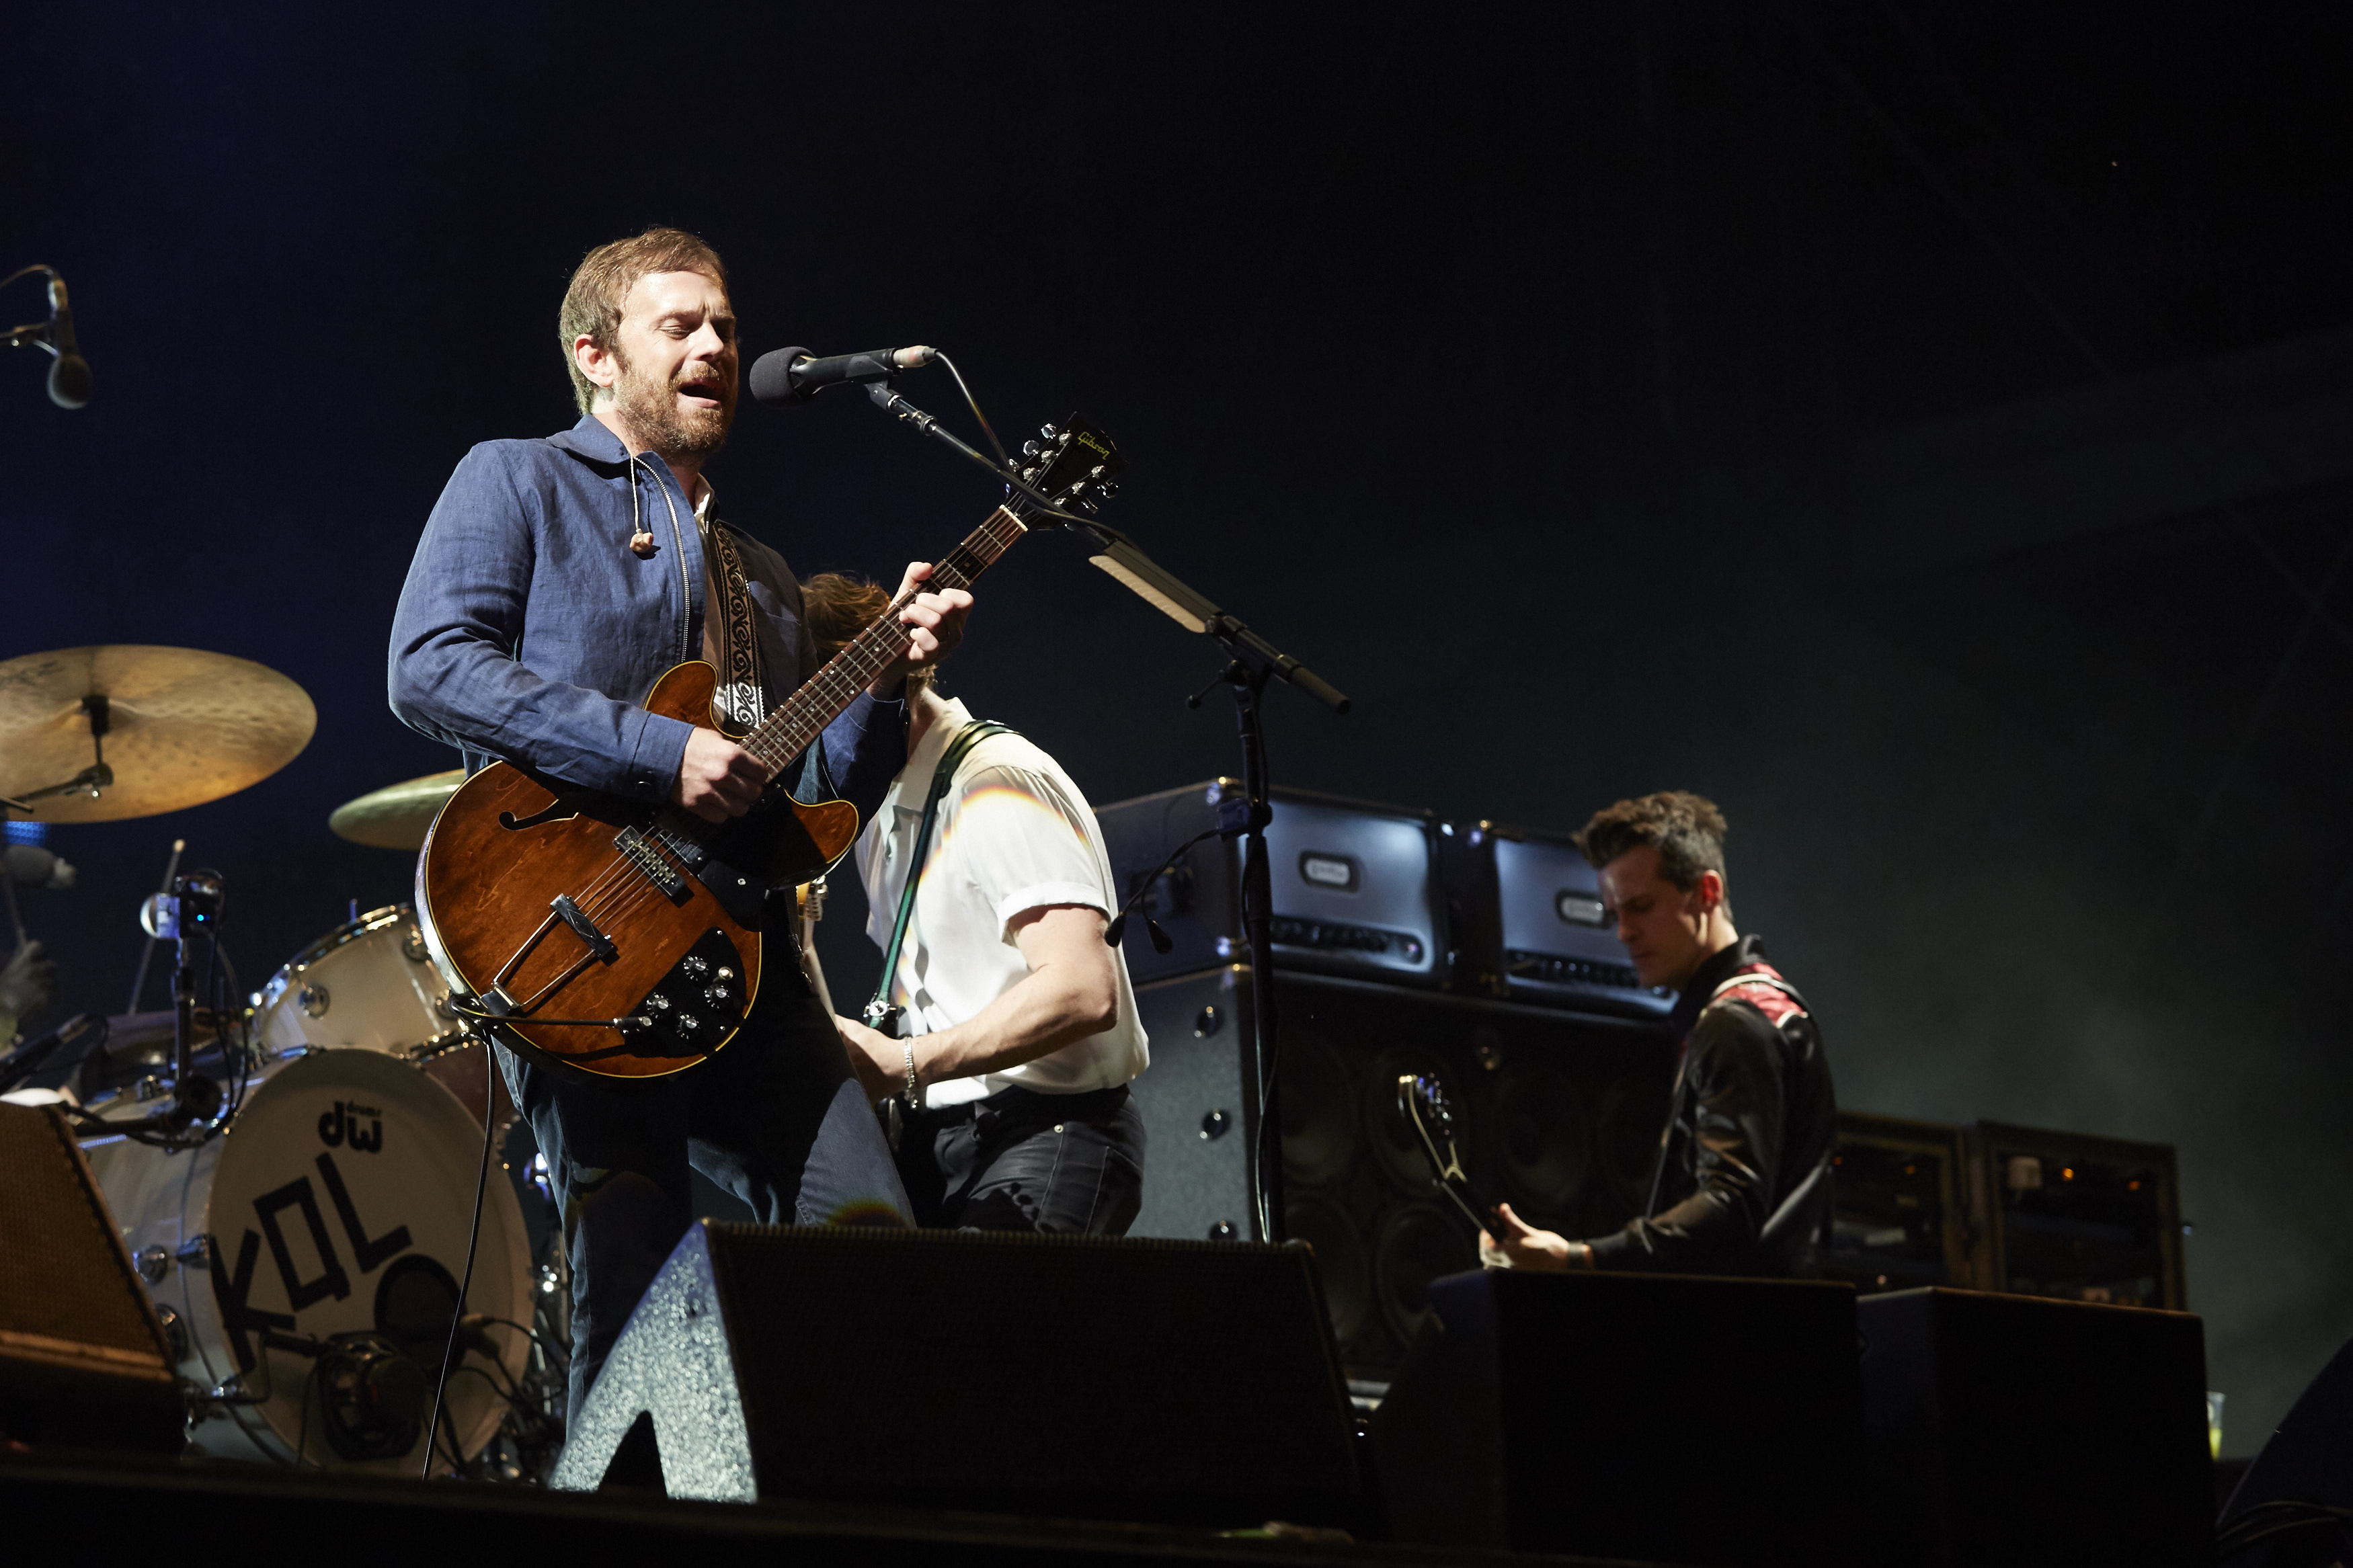 BERLIN, GERMANY - SEPTEMBER 10: (L-R) Caleb Followill, Matthew Followill and Jared Followill of Kings of Leon perform live on